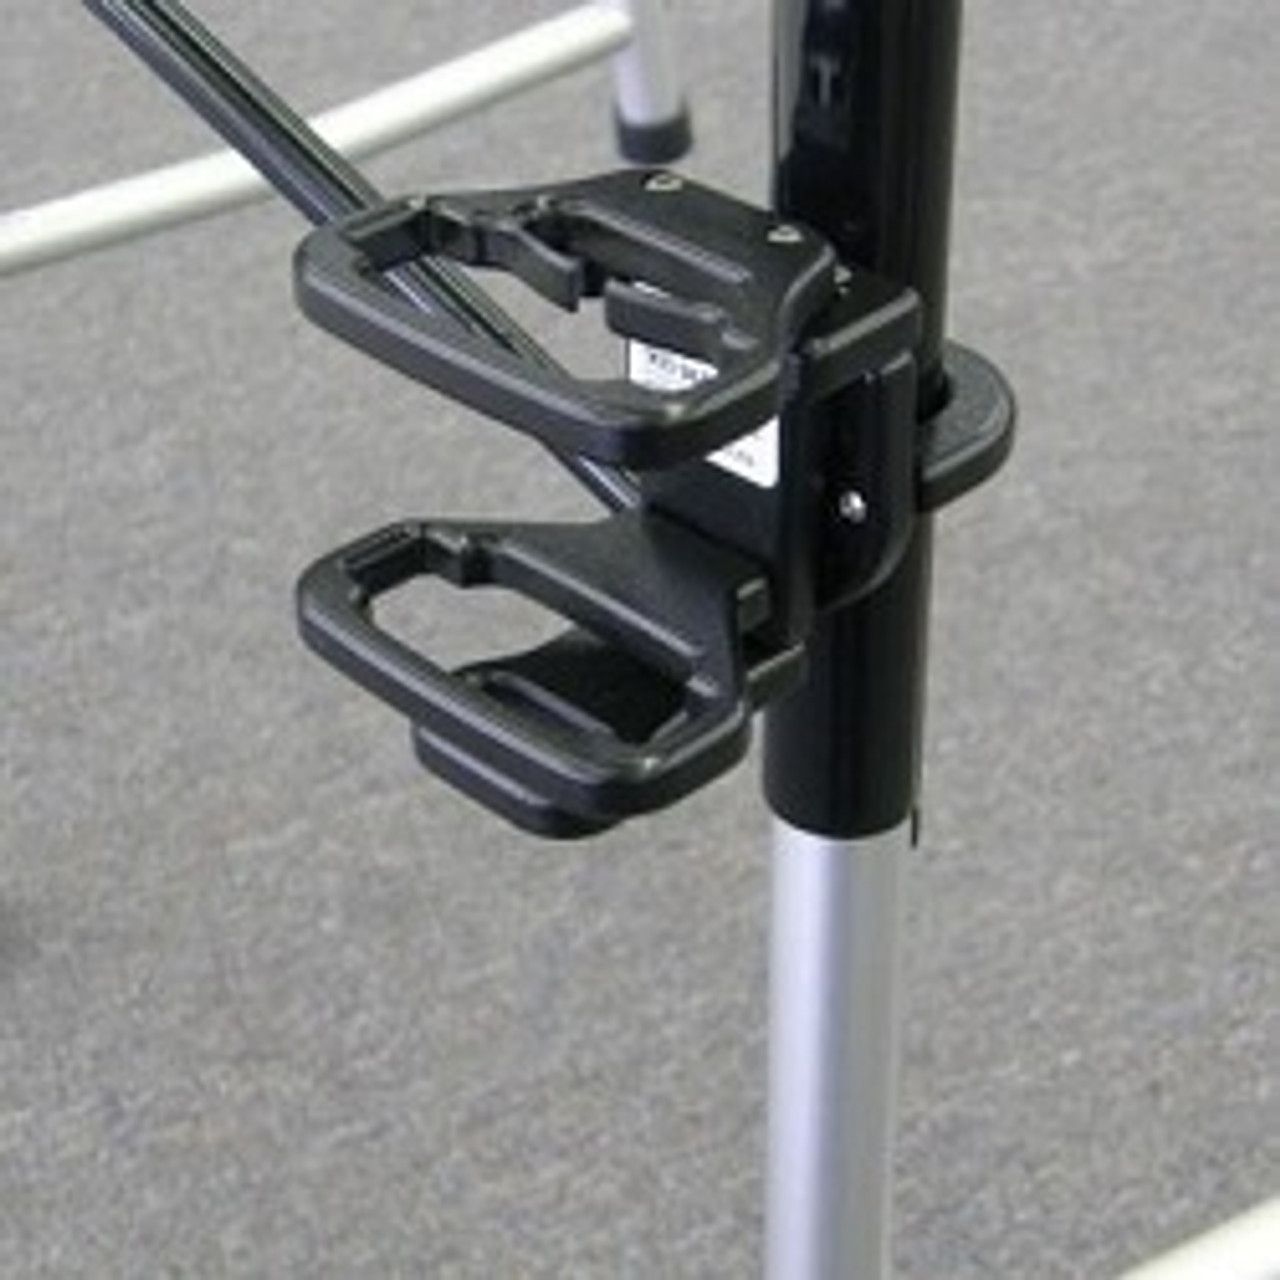 SnapIt! Wheelchair Cell Phone Holder